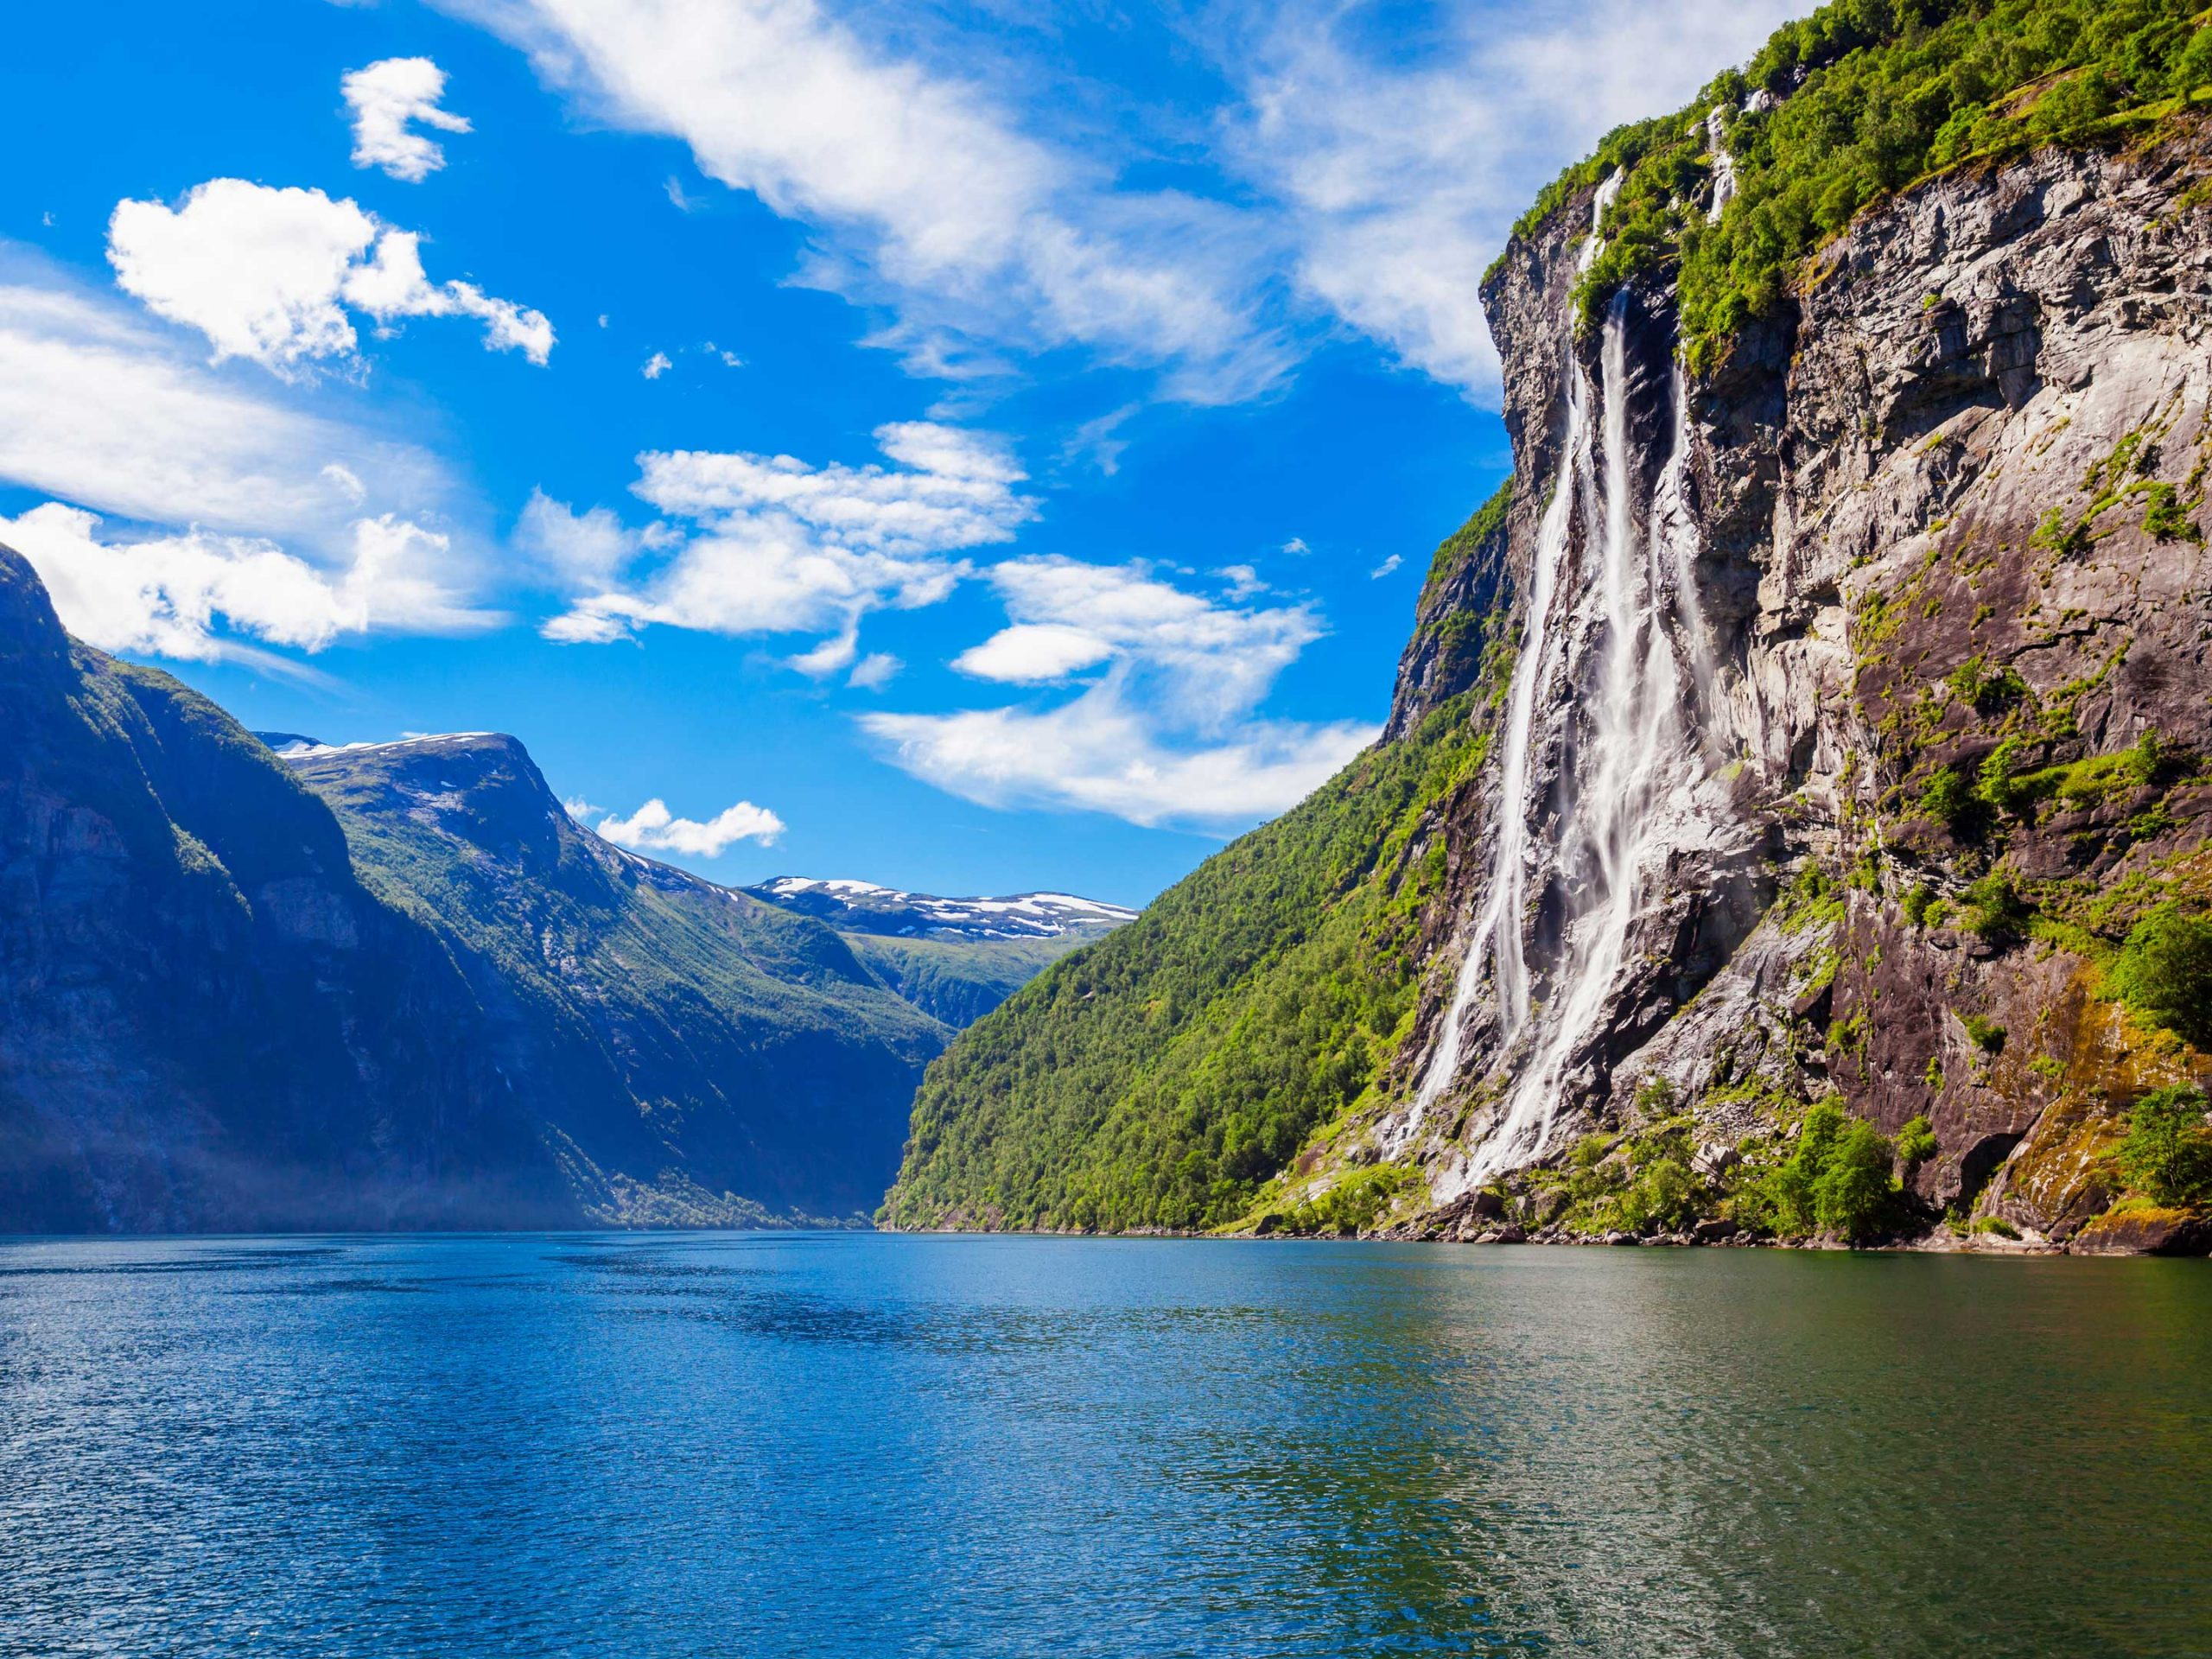 How Norway emerged after the latest ice age. From the Geiranger fjord. | © saiko3p - stock.adobe.com.